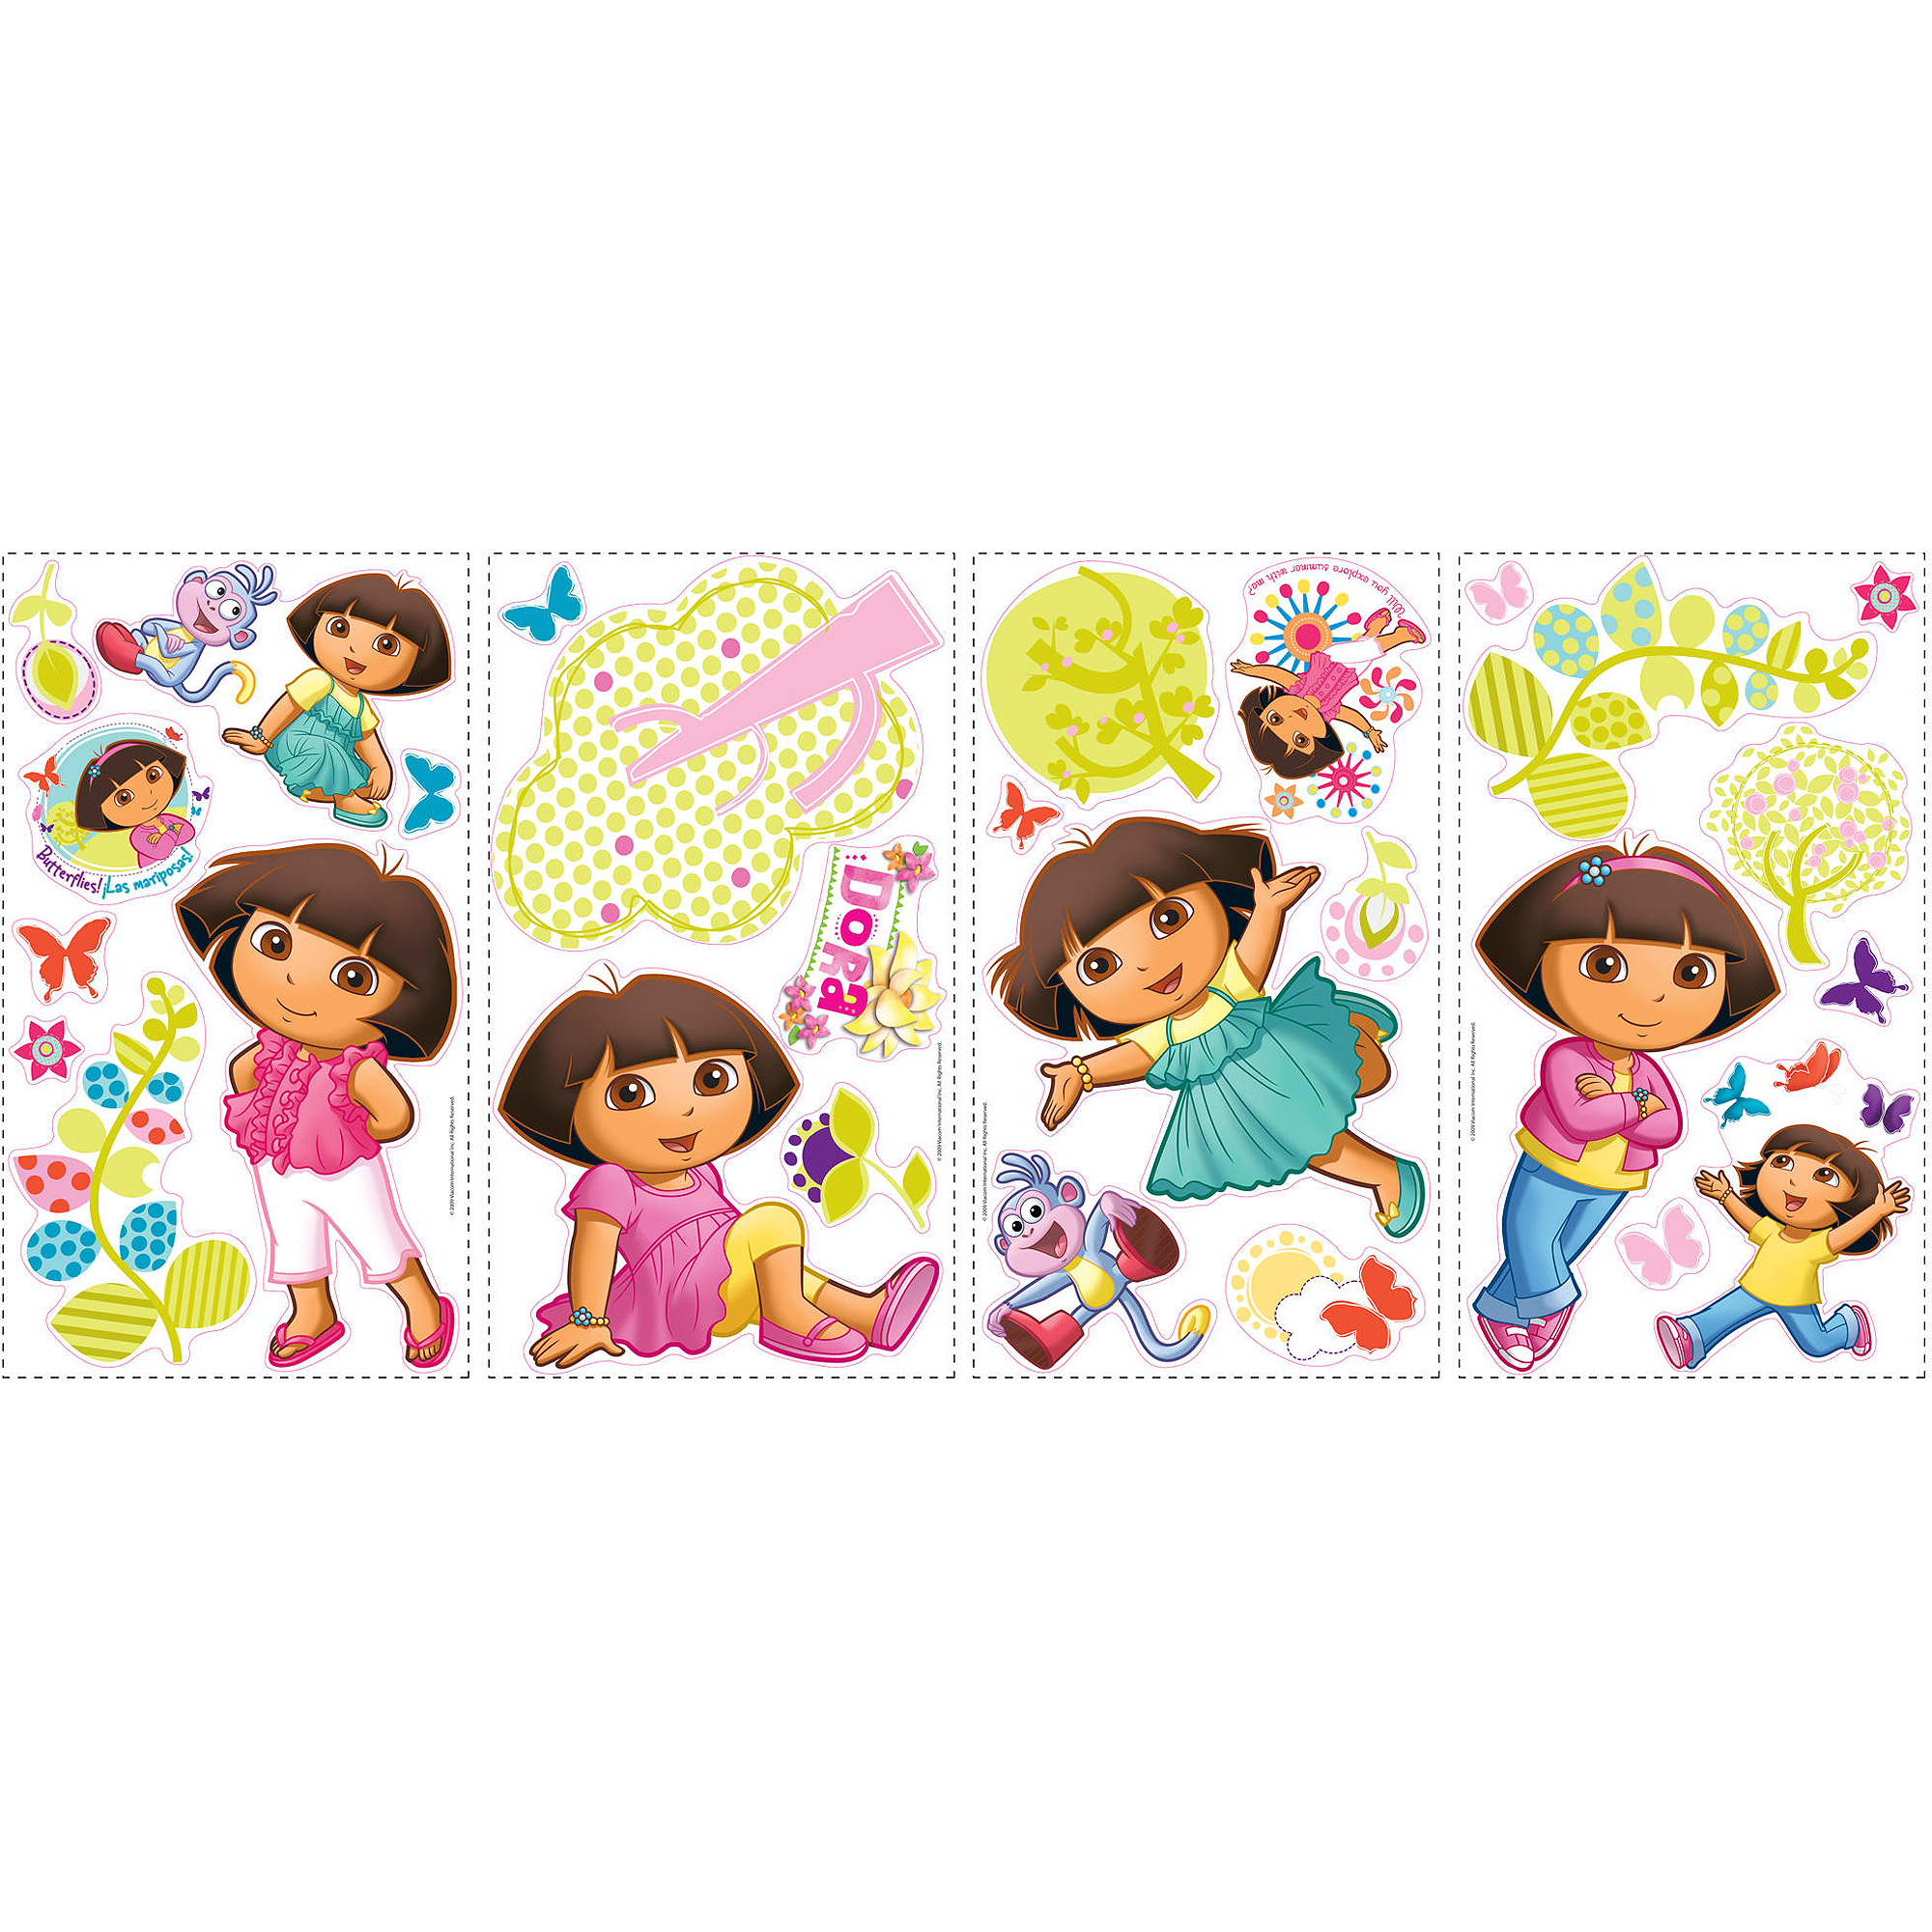 RoomMates Dora the Explorer Peel and Stick Wall Decals